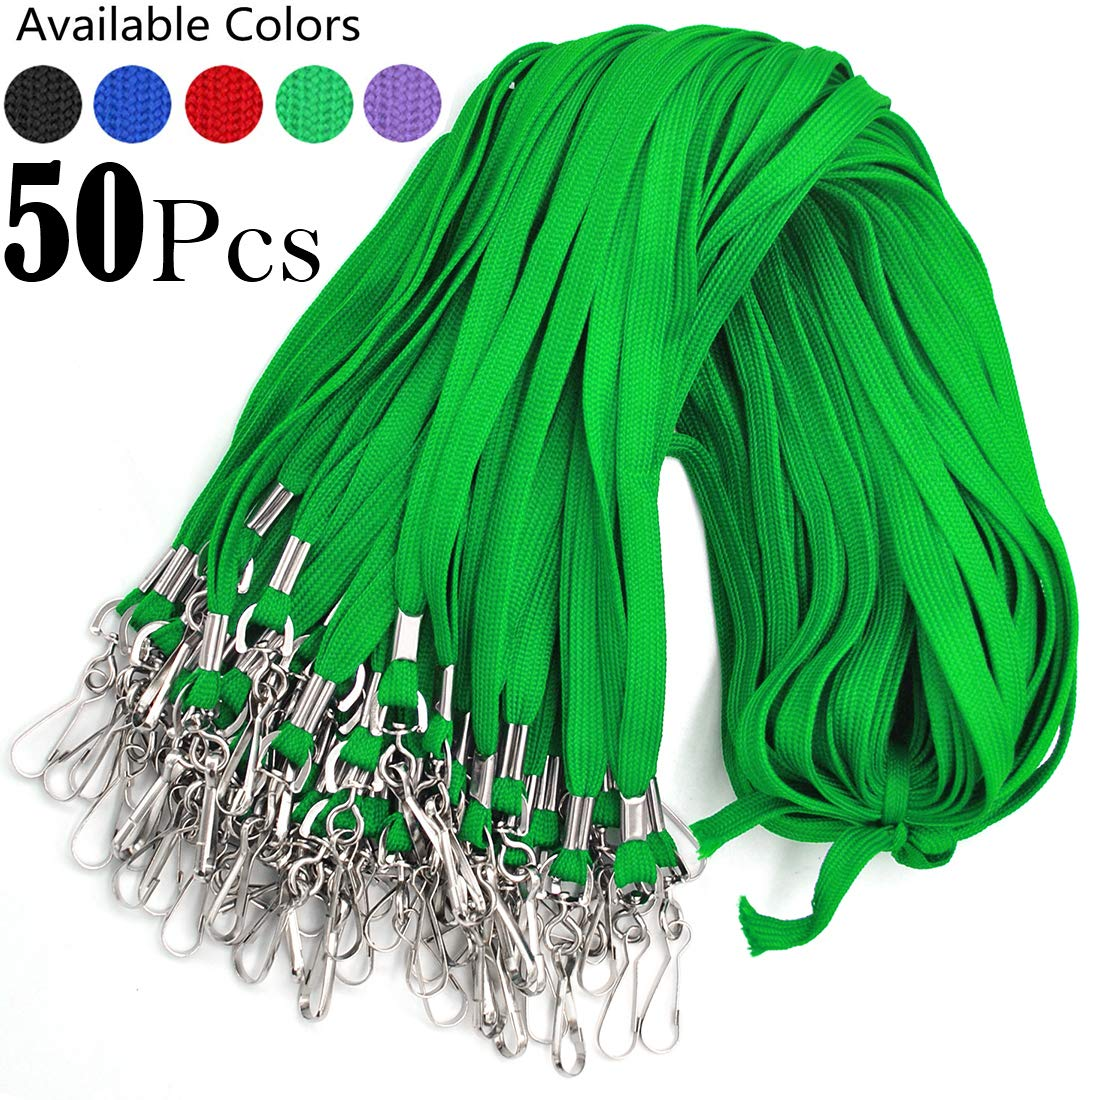 Bulk Lanyard 32'' Flat Lanyards with Swivel Hook Attachment Lanyards with Clip (Green) by Bird Fiy